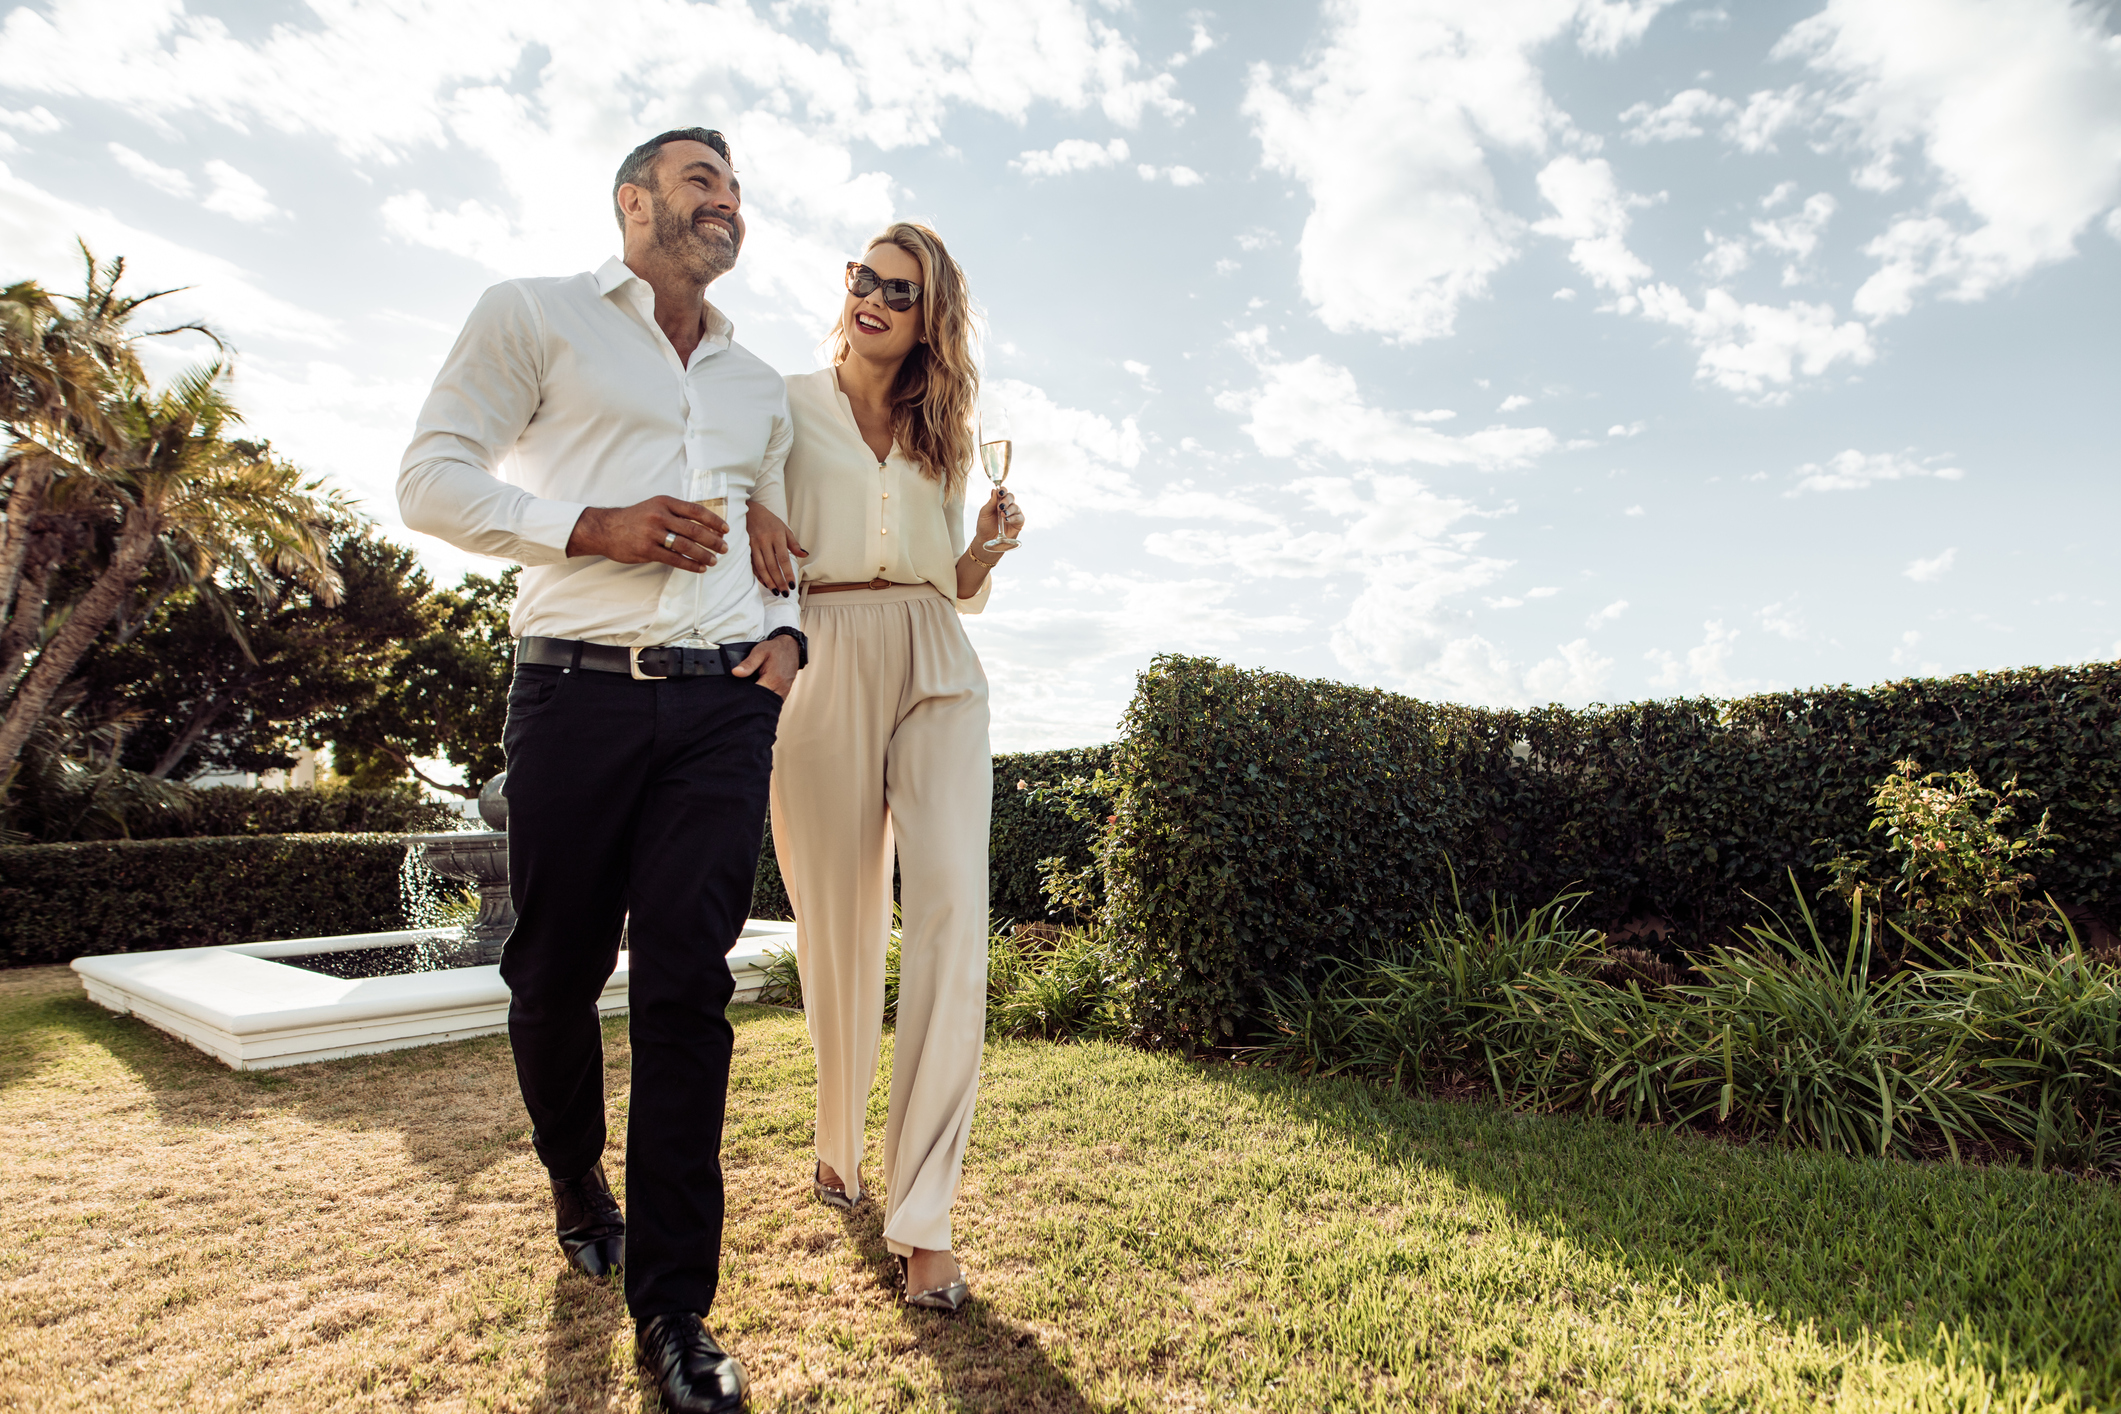 Well-dressed couple walking through greenery drinking champagne.